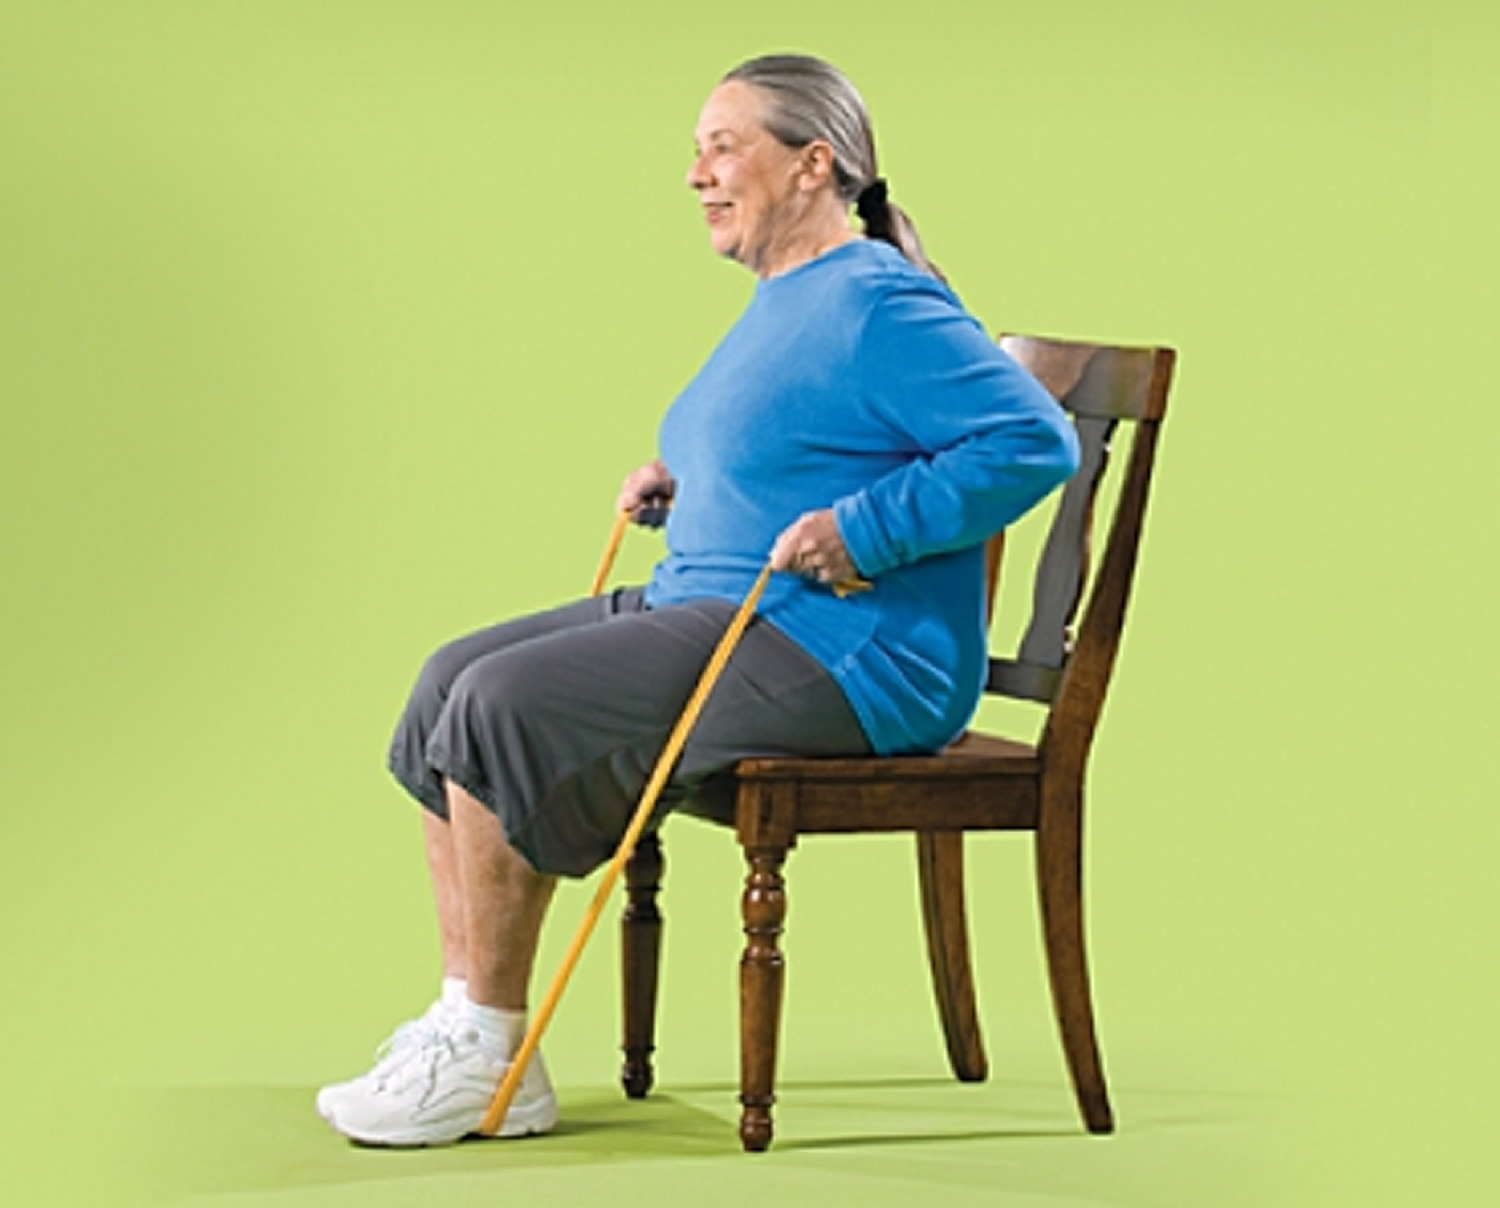 Seated Row with Resistance Band Strength Exercise for Seniors